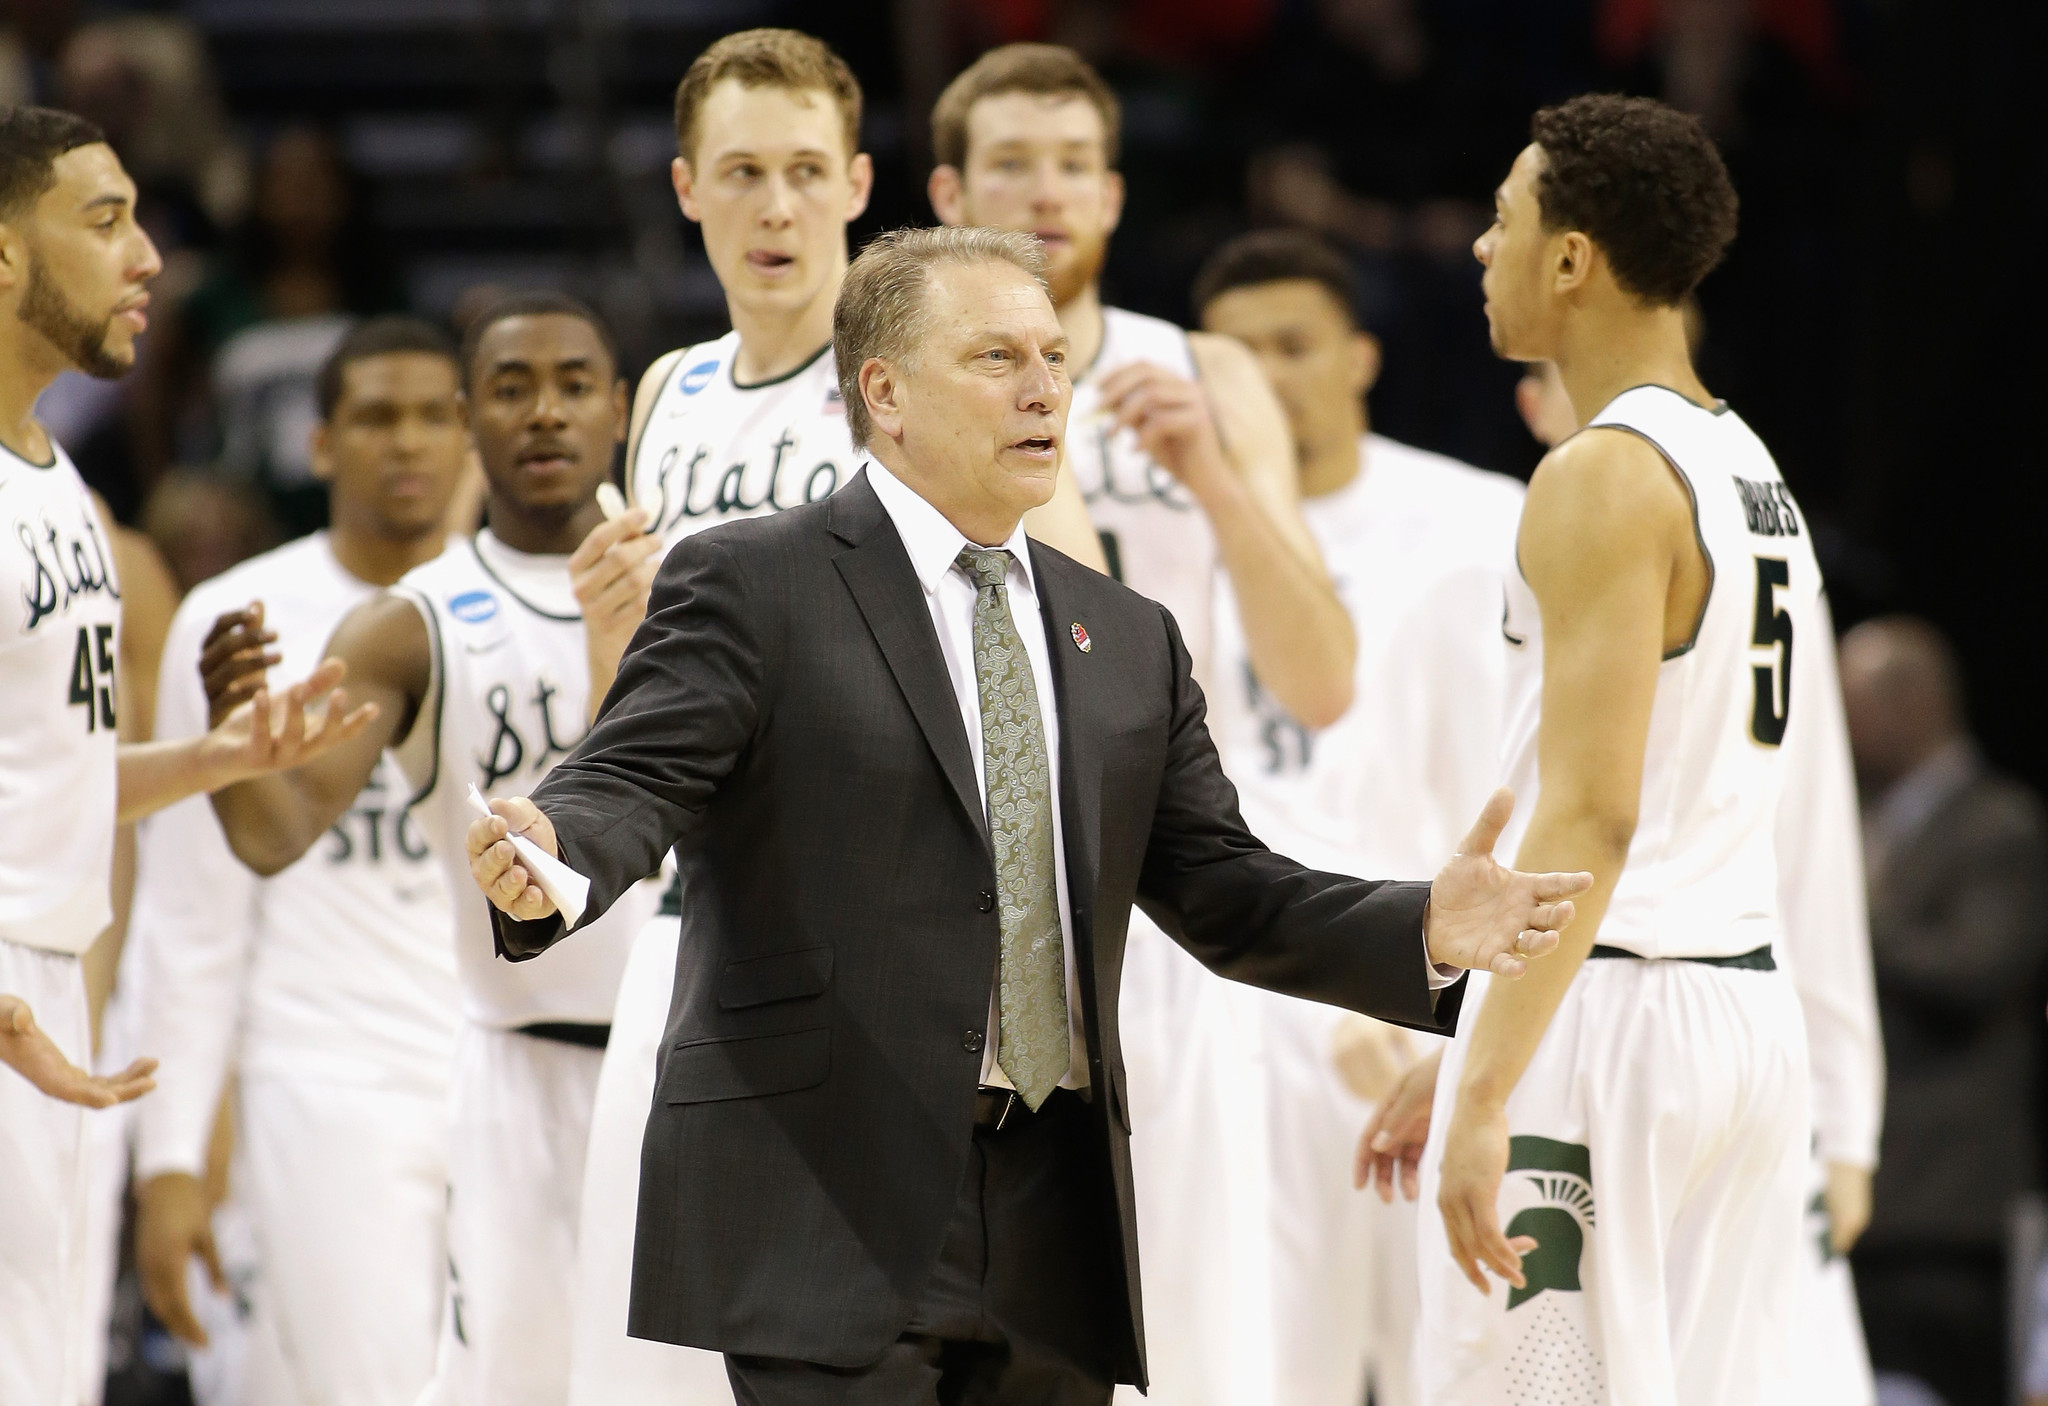 Column: NCAA tournament a showdown of coaches: Calipari, Izzo, Pitino et al.